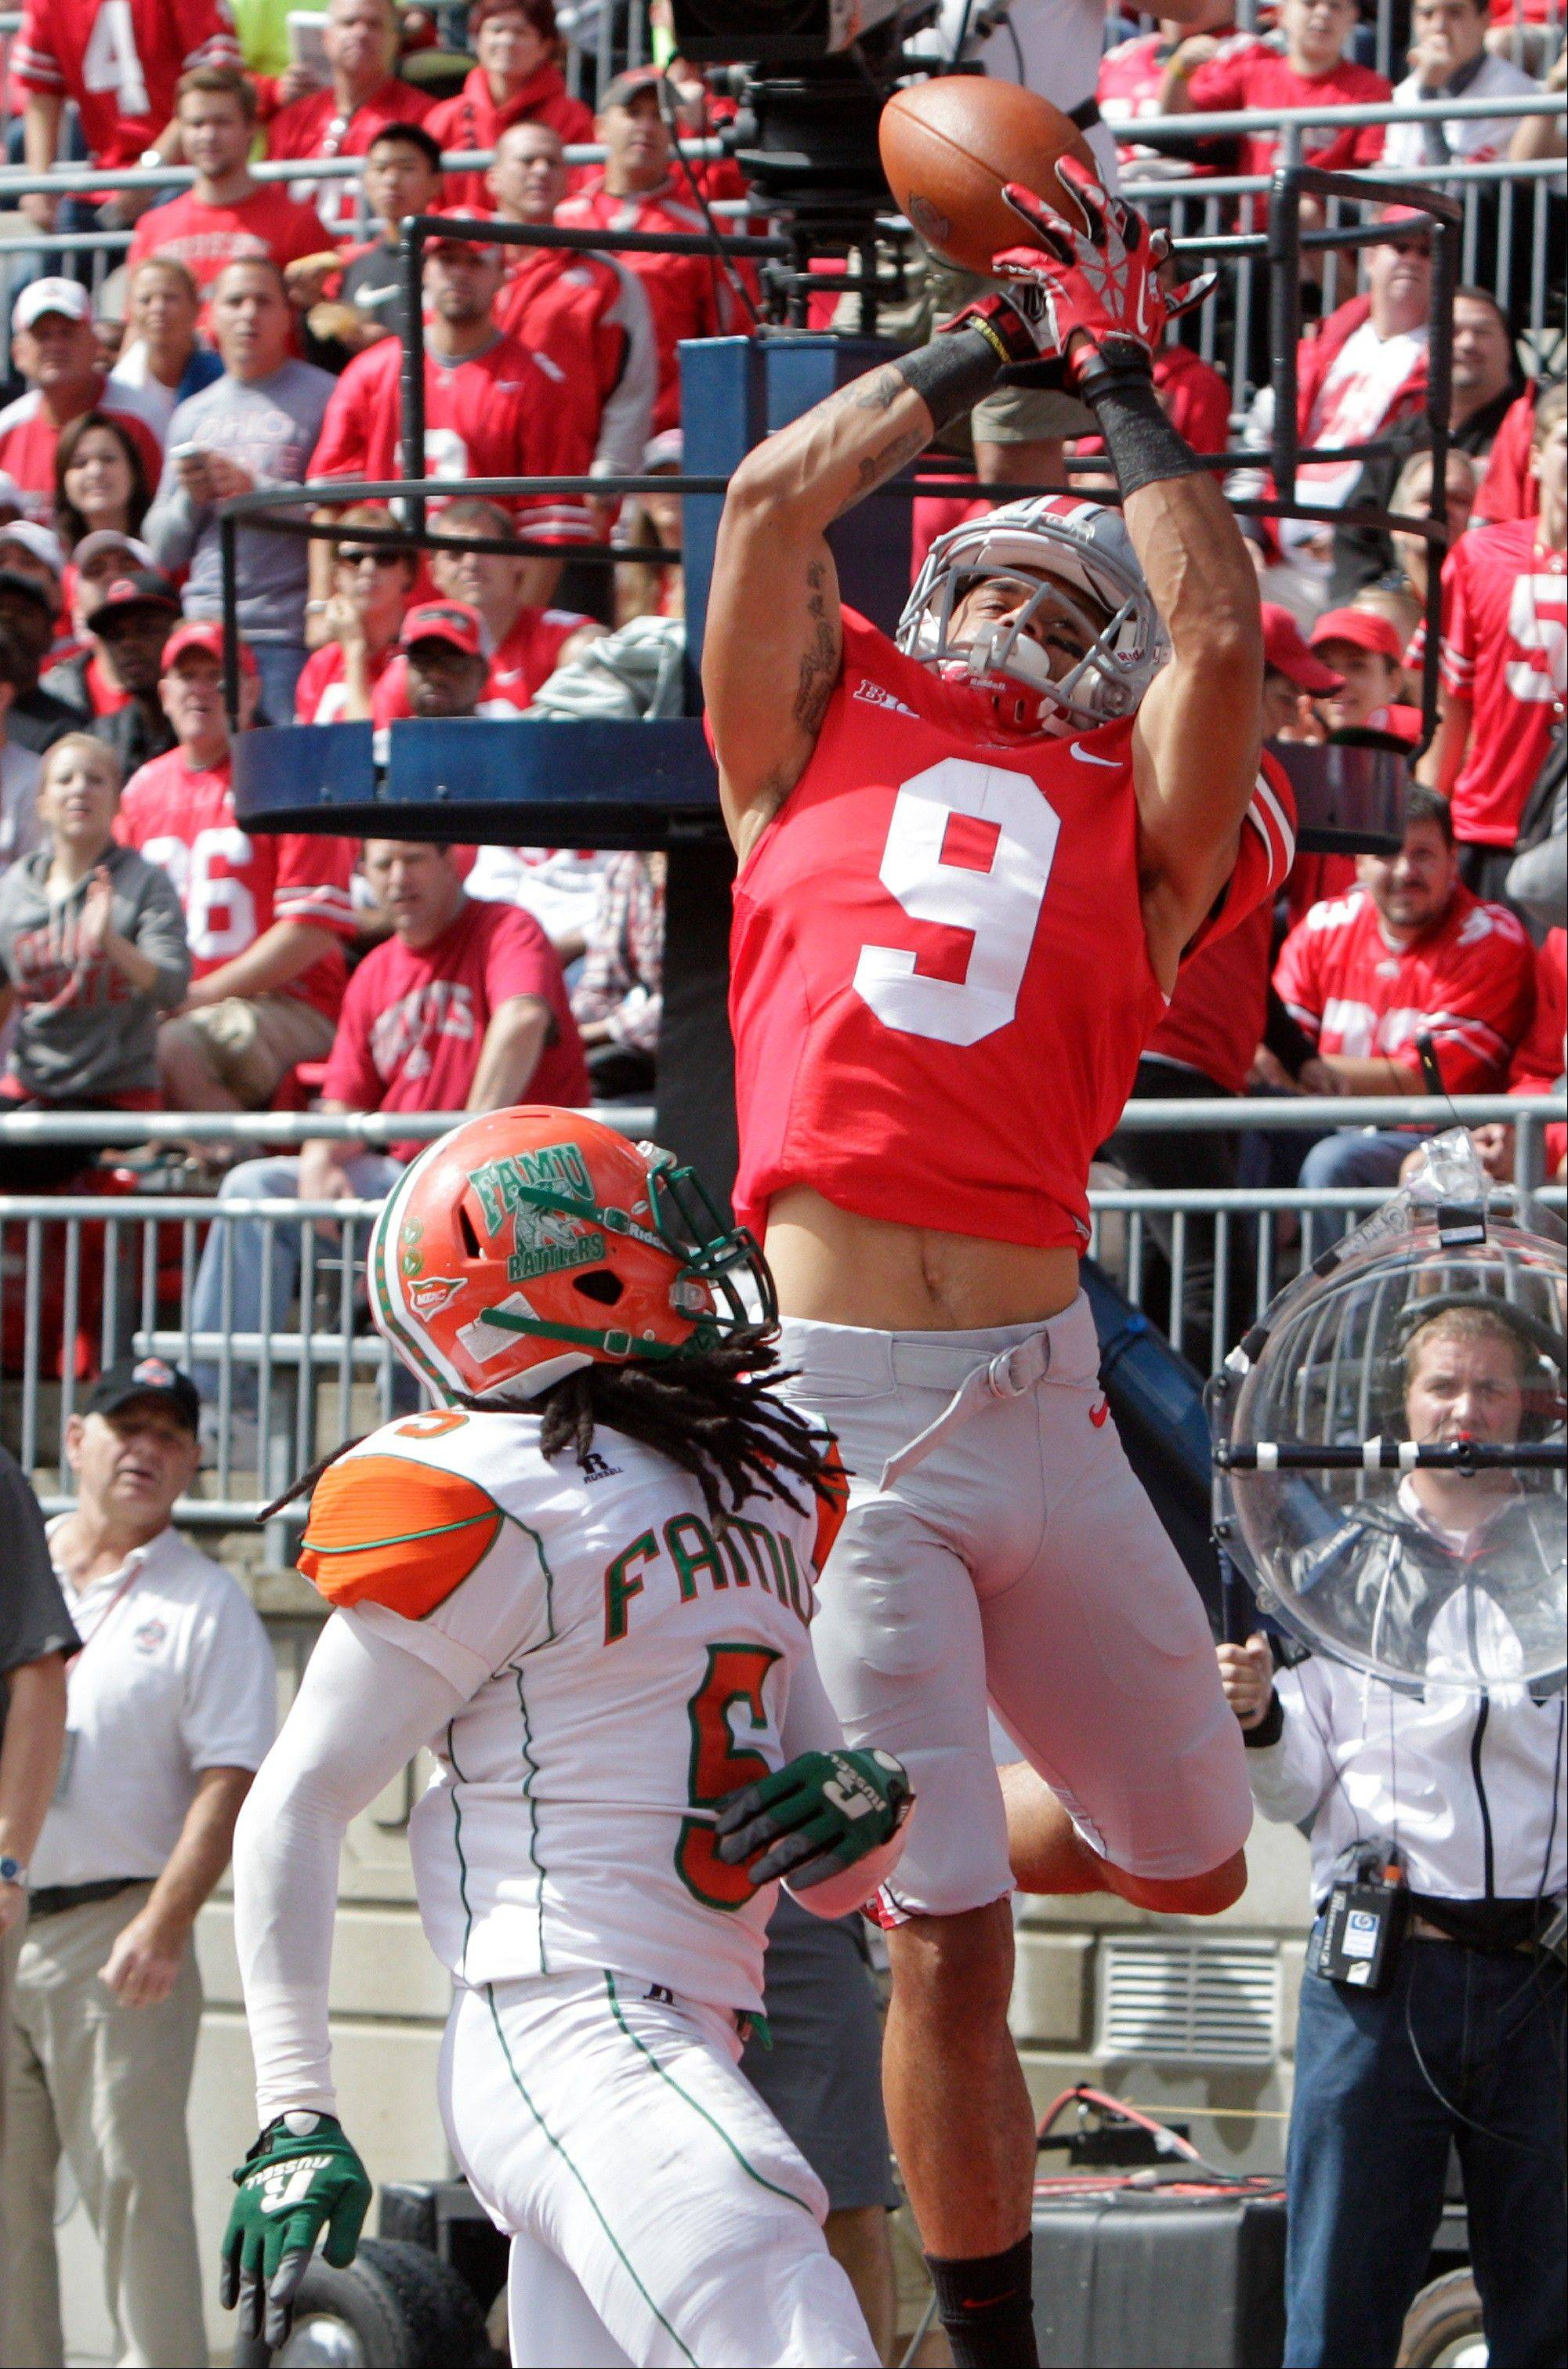 Ohio State wide receiver Devin Smith, top, catches a touchdown pass over Florida A&M cornerback Patrick Aiken during the first quarter of an NCAA college football game Saturday, Sept. 21, 2013, in Columbus, Ohio.